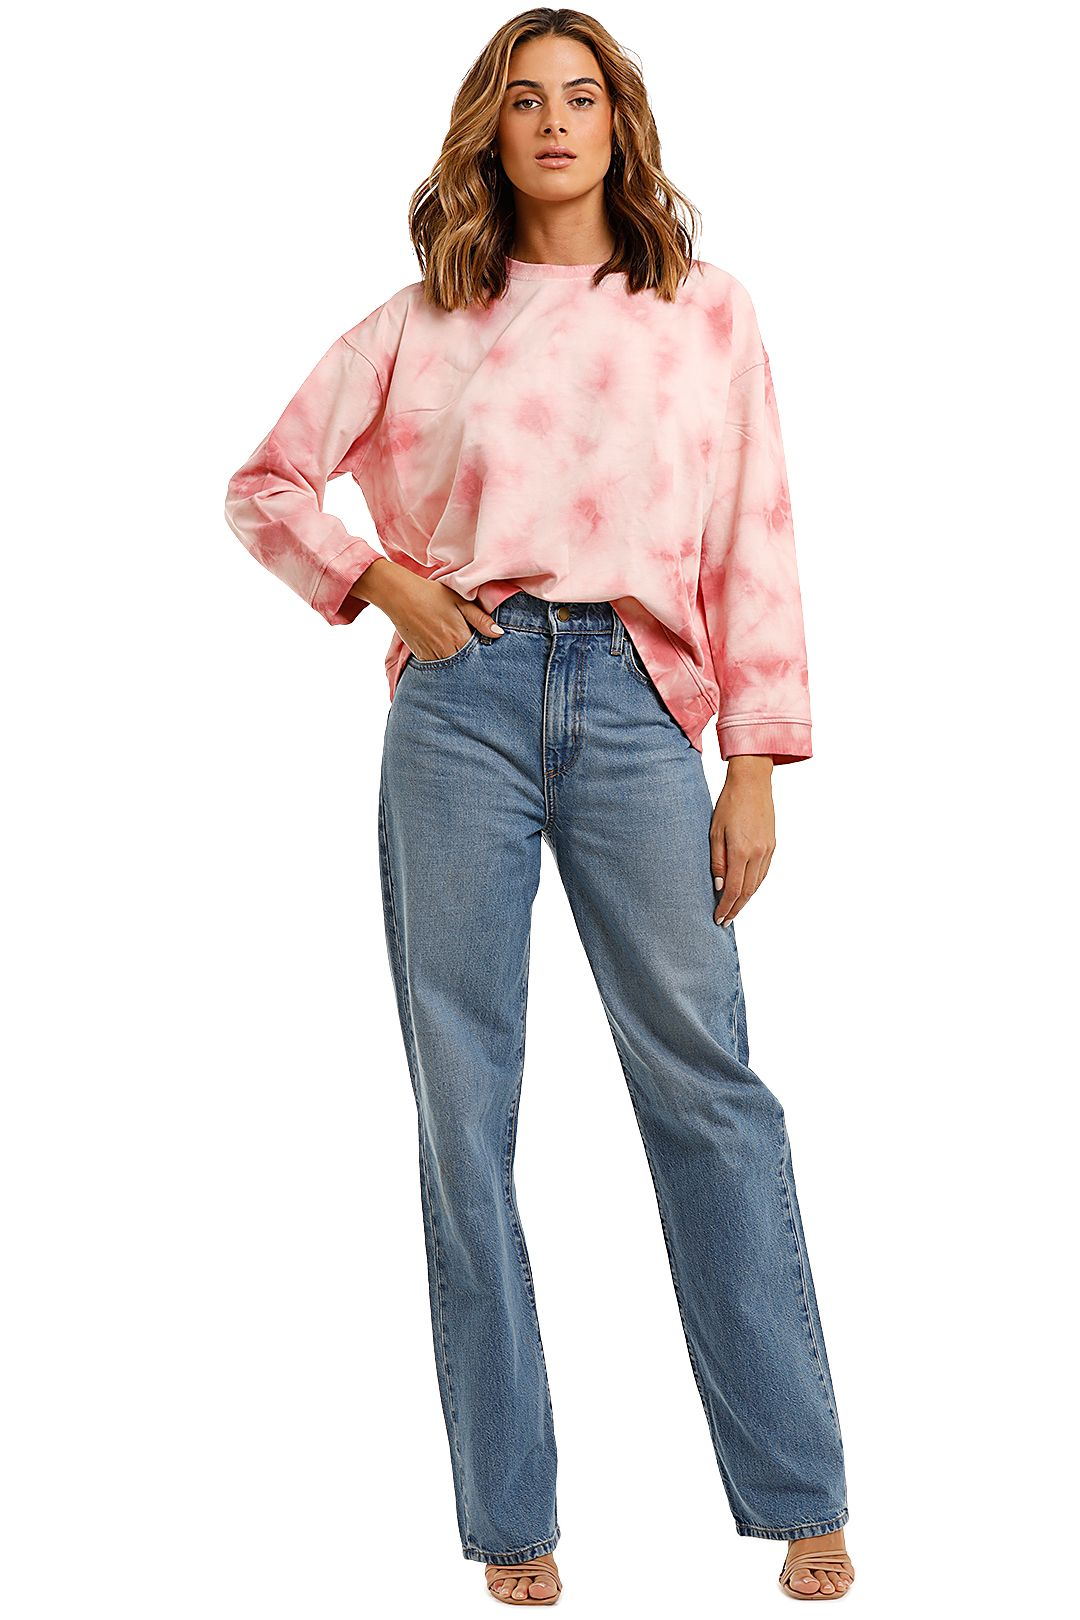 Bande Studio Tie Dye Sweat Fusion Coral long sleeve